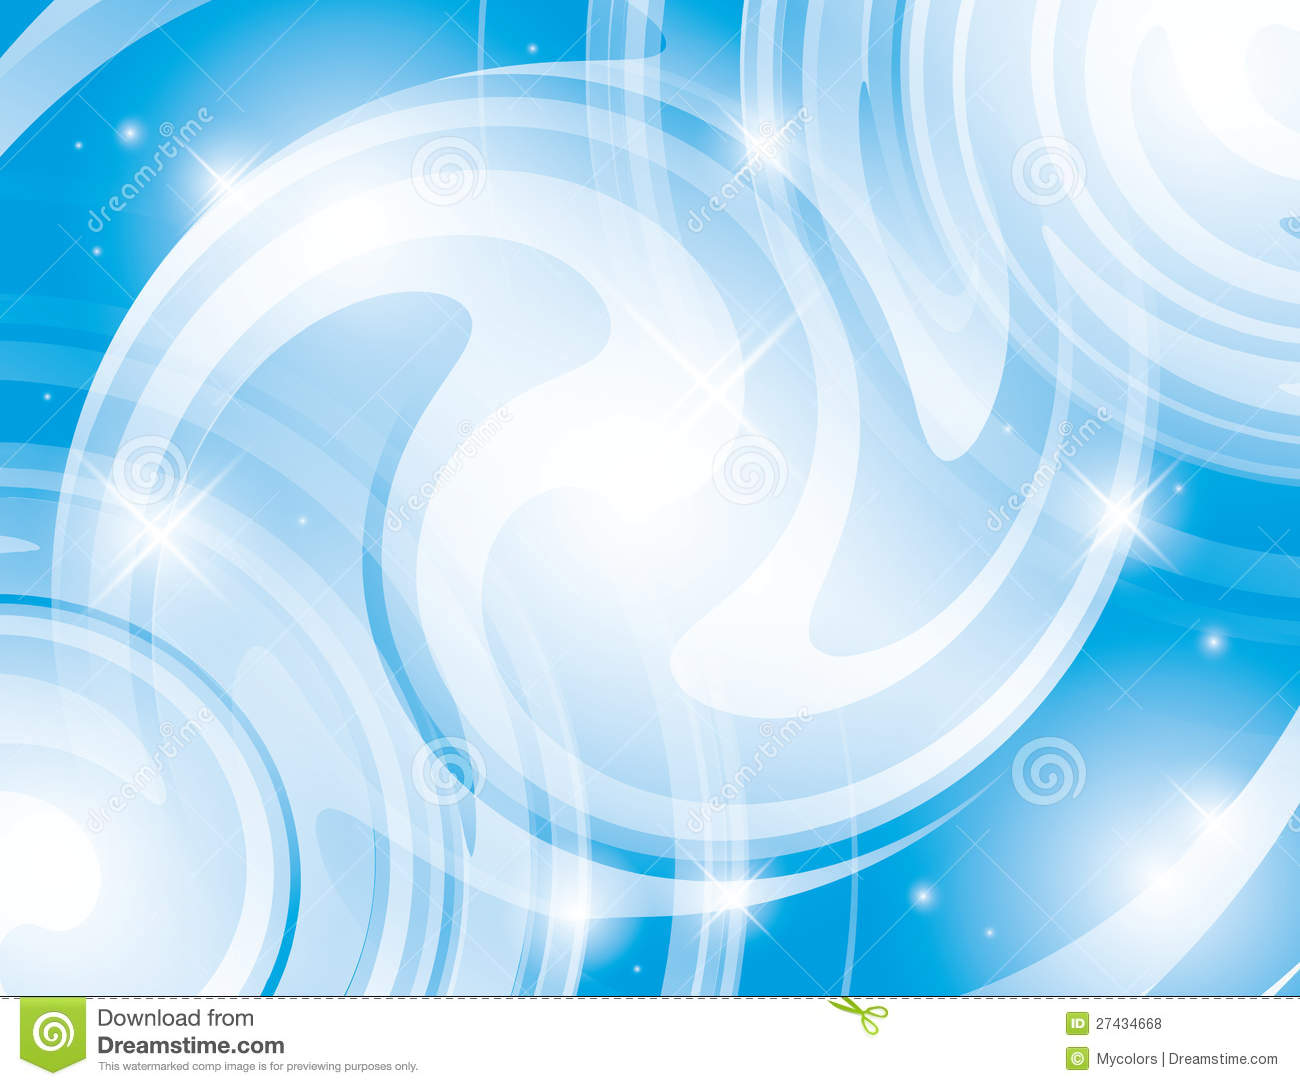 Abstract Shiny Light Blue Background - Vector Stock Vector ...